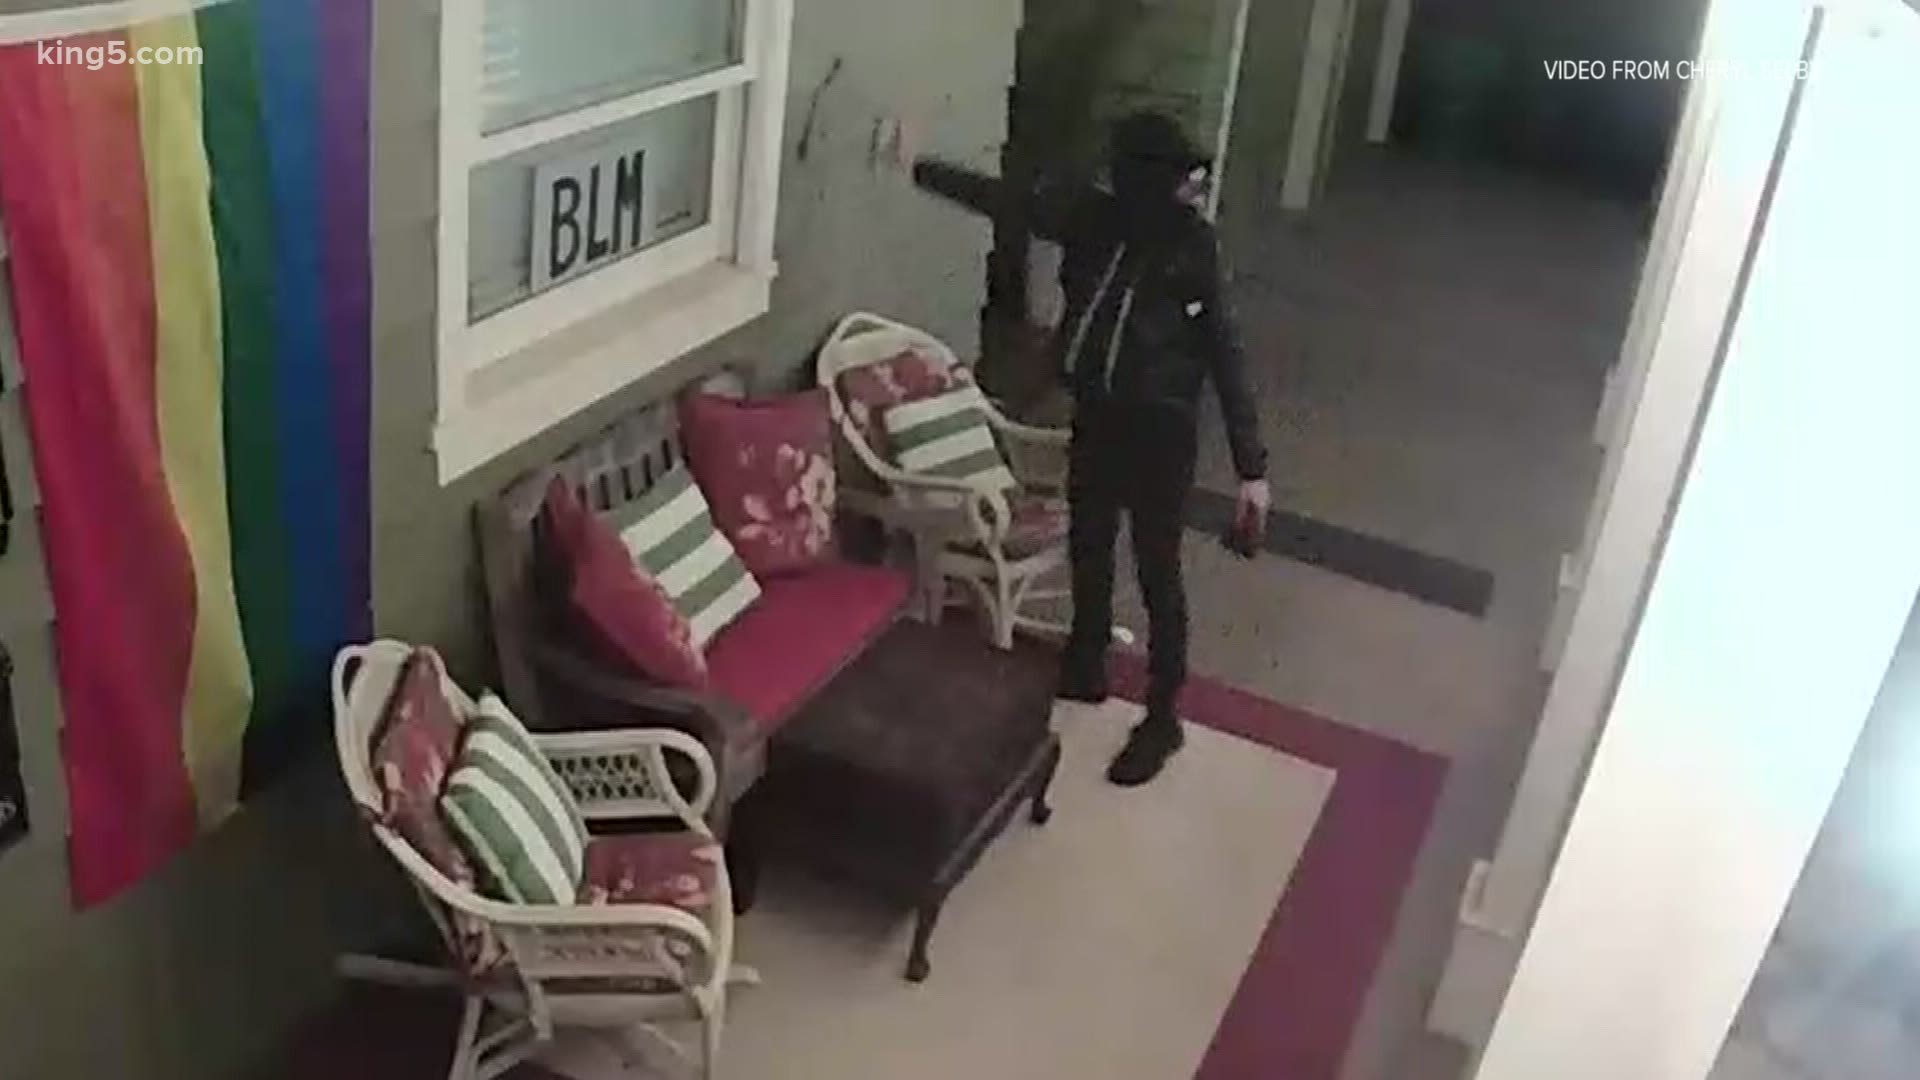 Olympia mayor's home vandalized during protest | king5.com